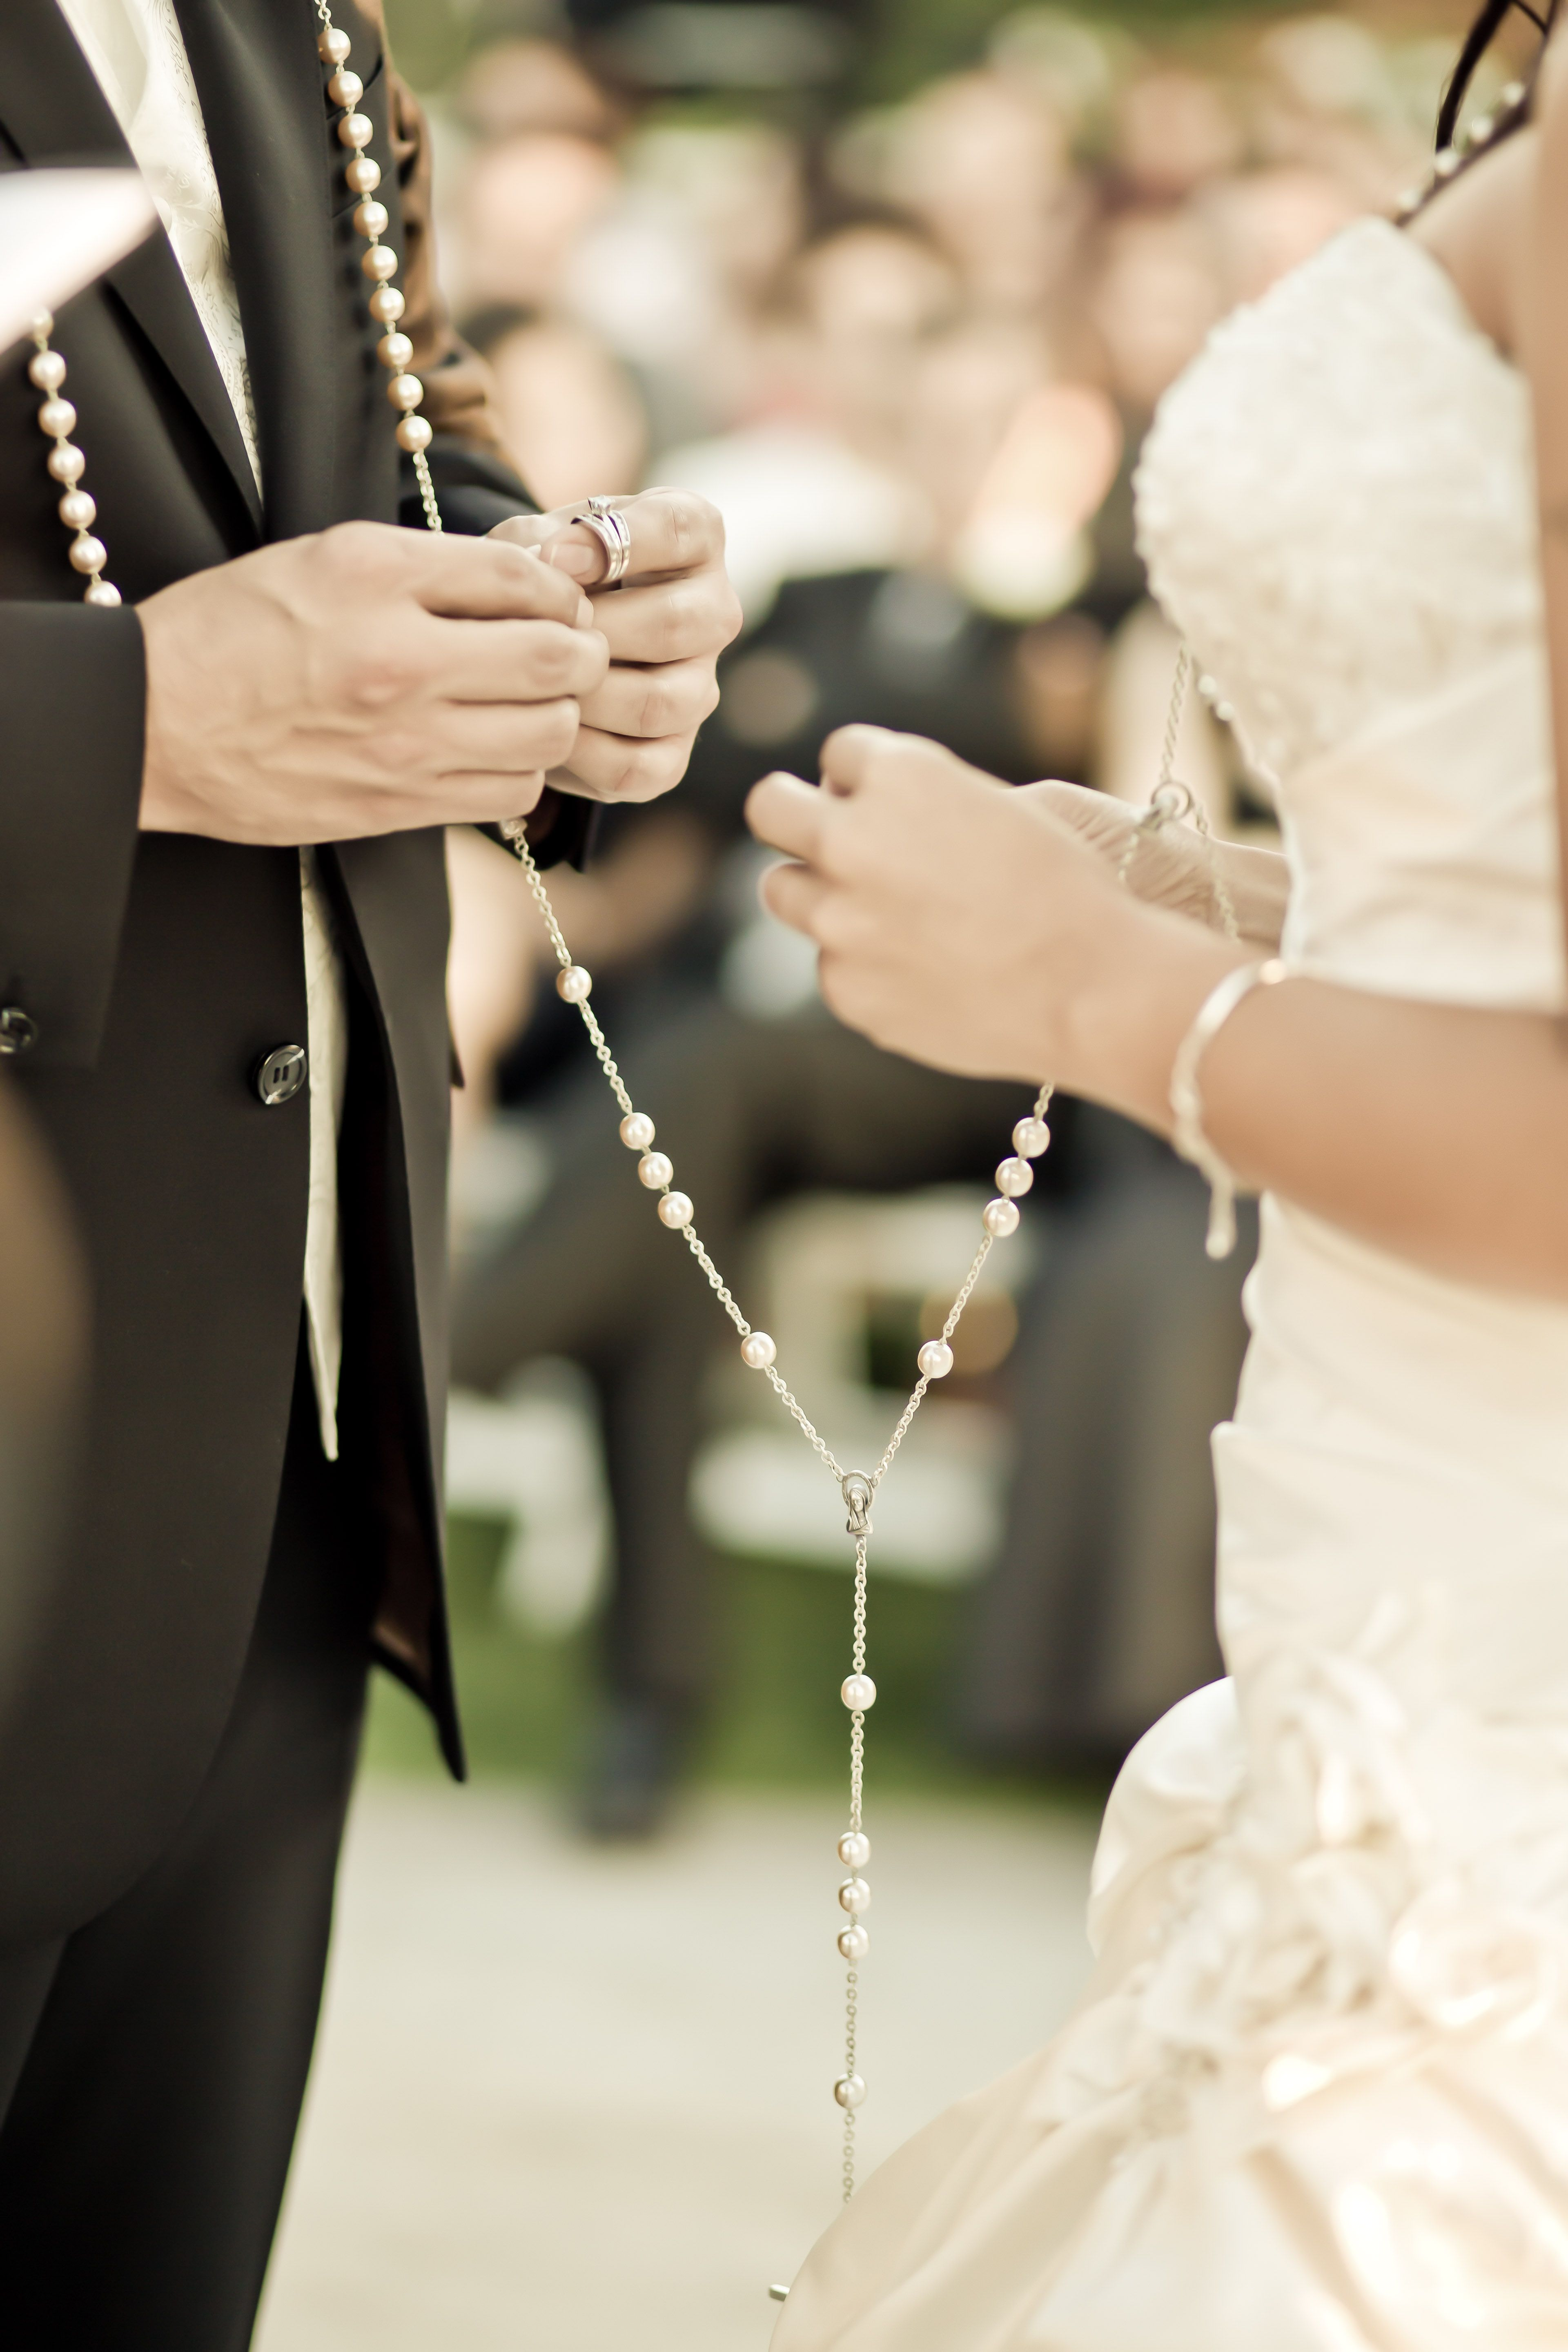 Mexican Catholic Wedding Tradition The Lasso